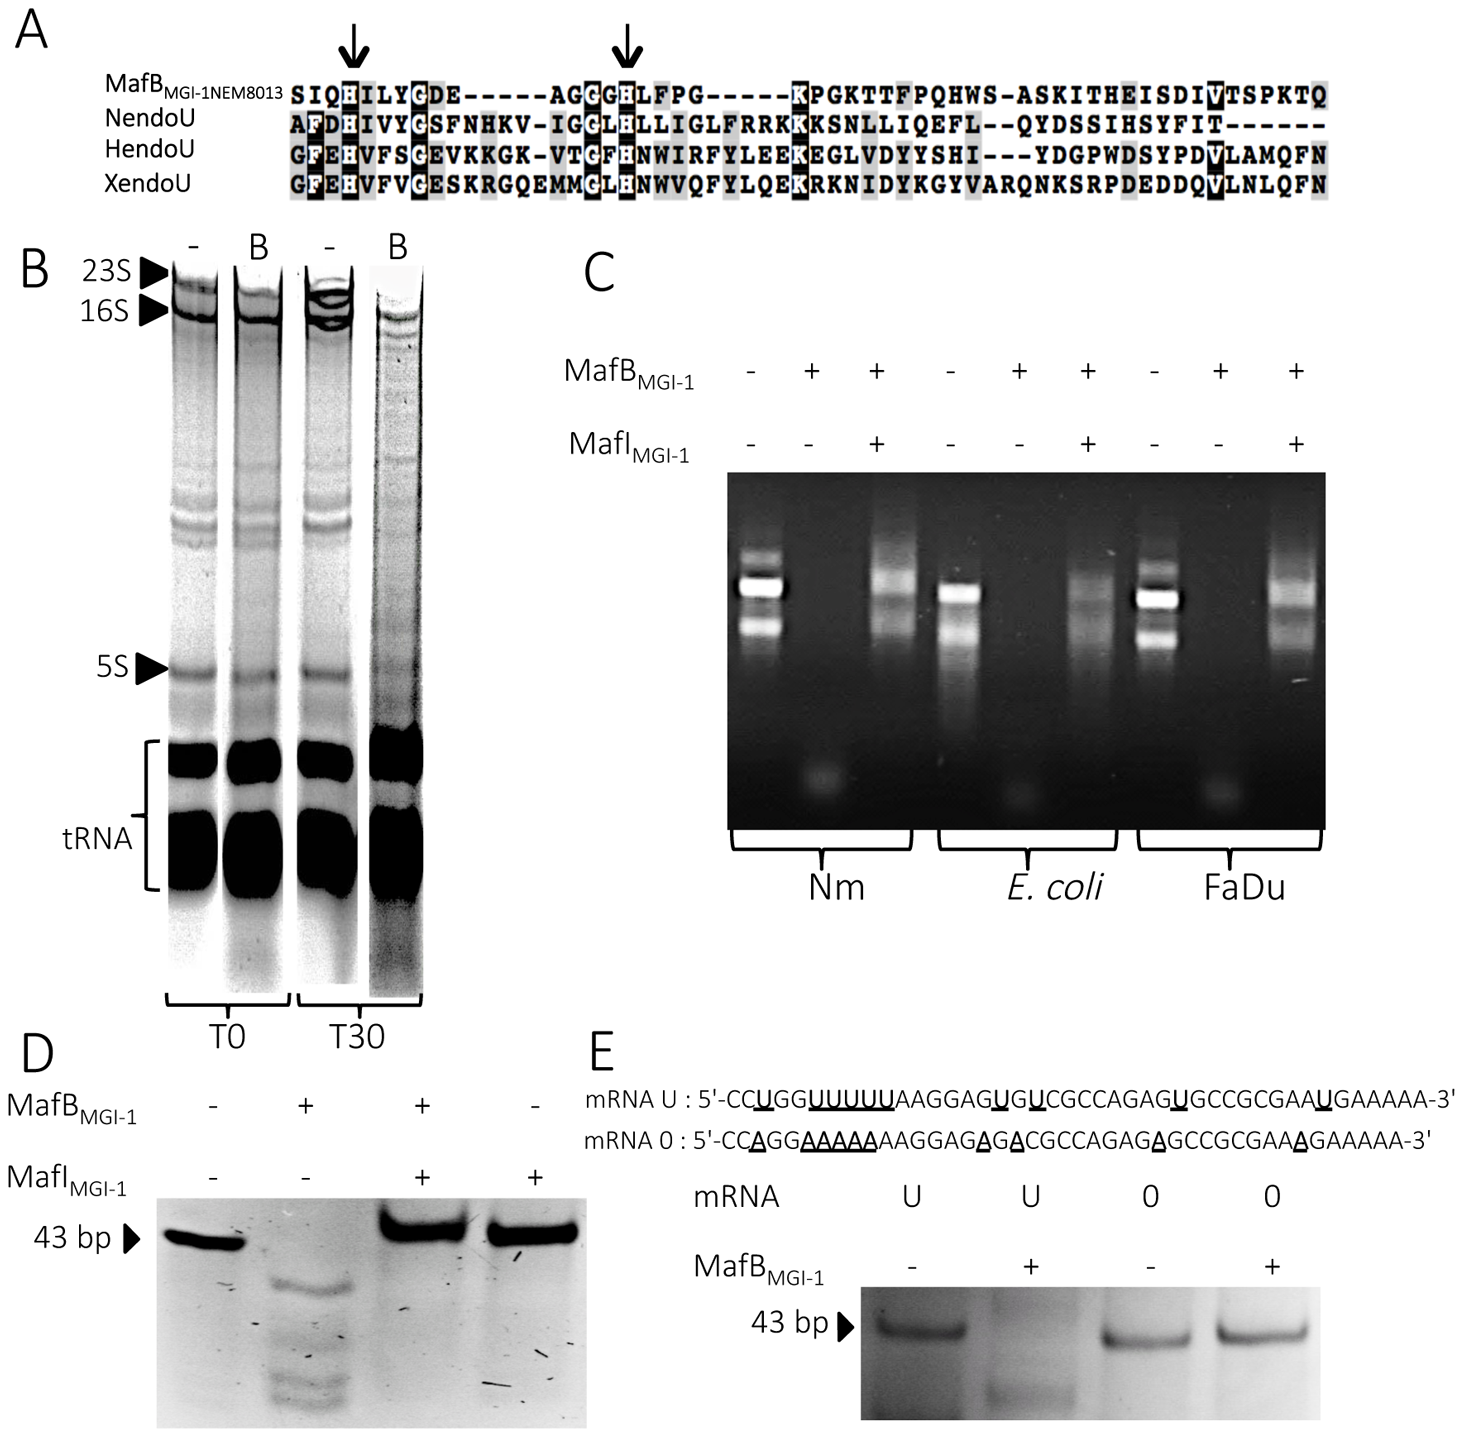 MafB<sub>MGI-1NEM8013</sub> is a bacterial EndoU nuclease.